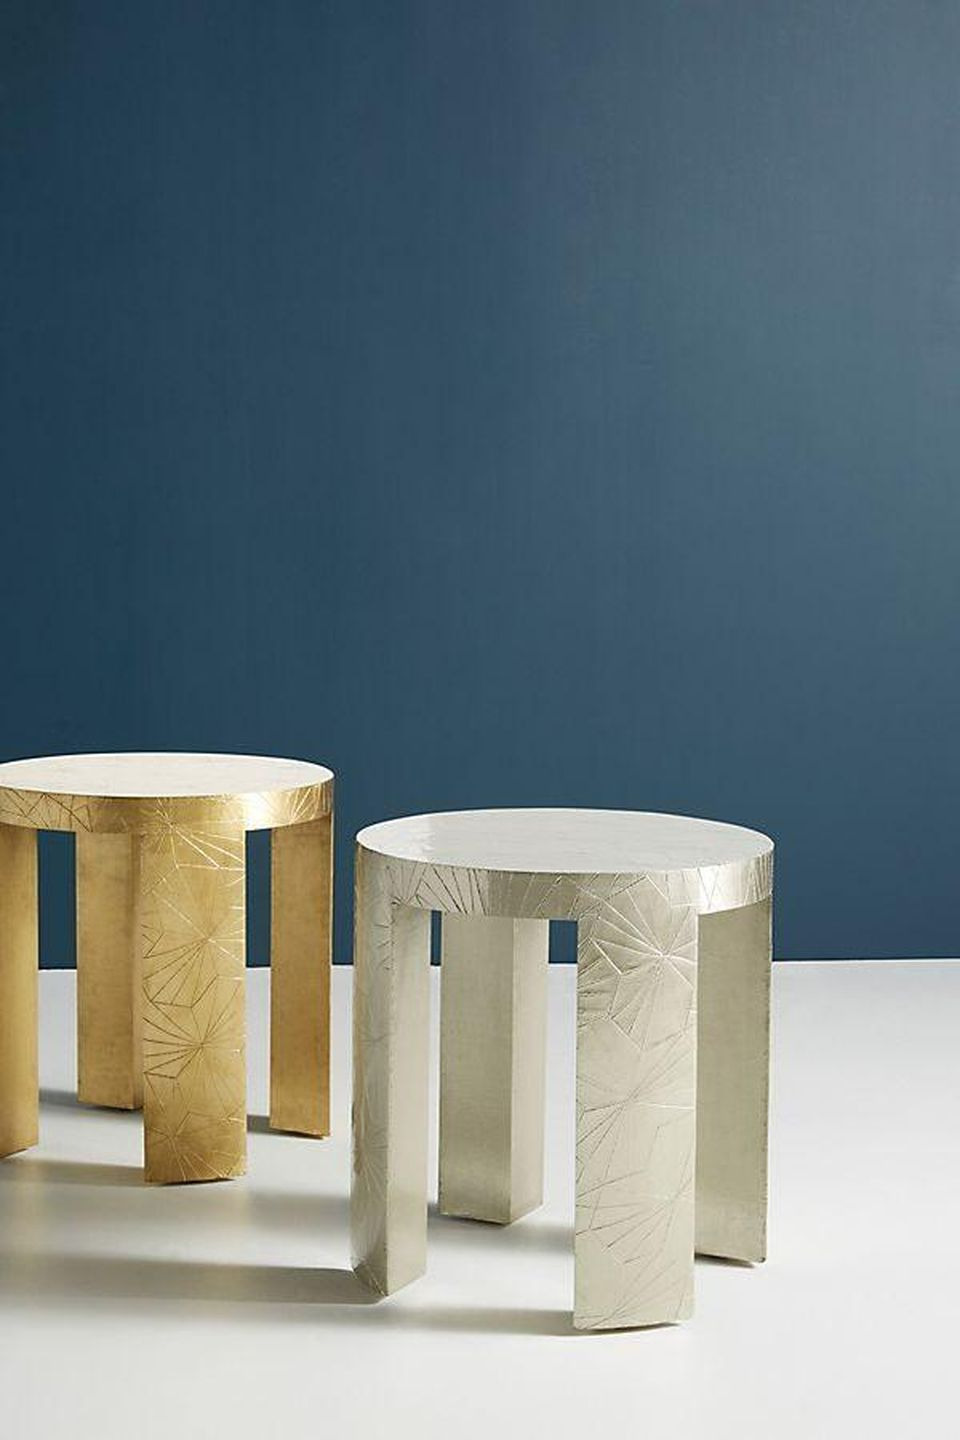 s blogs imagesrbes forbes finds files 2019 01 Anthropologie Floral Embossed Side Table e